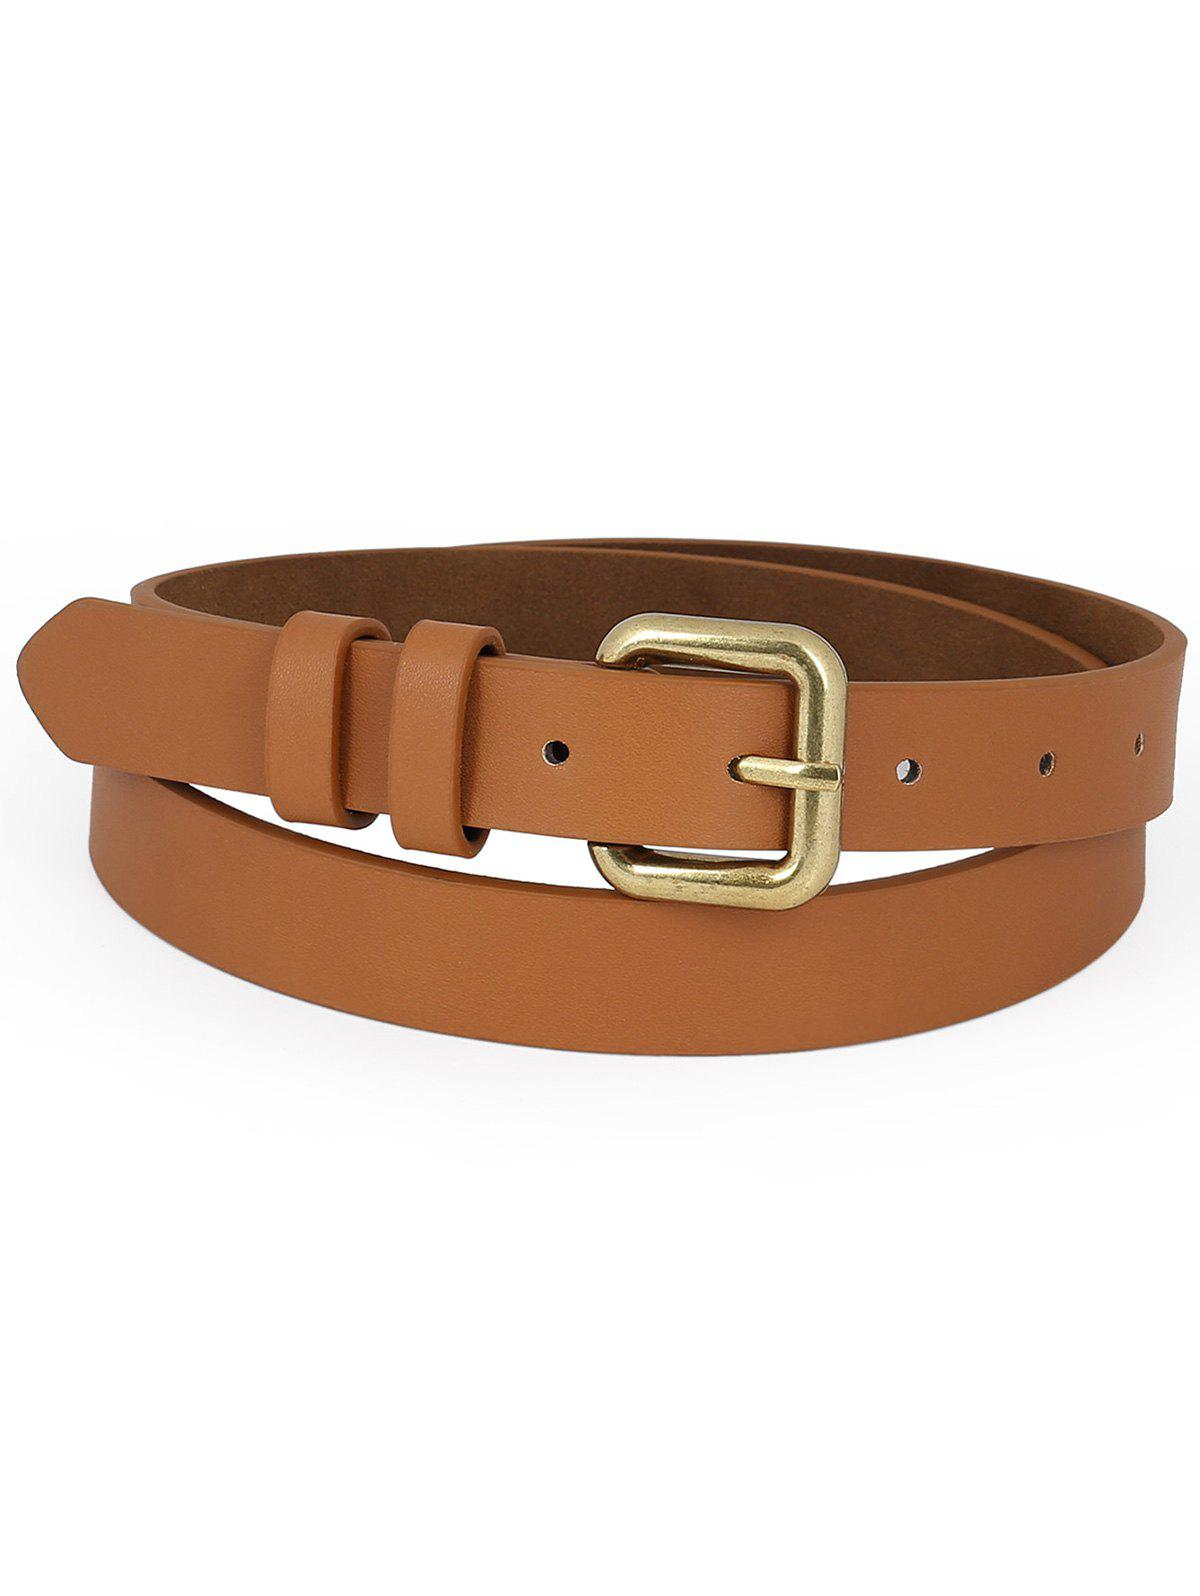 Affordable Simple Style Buckle Waist Belt